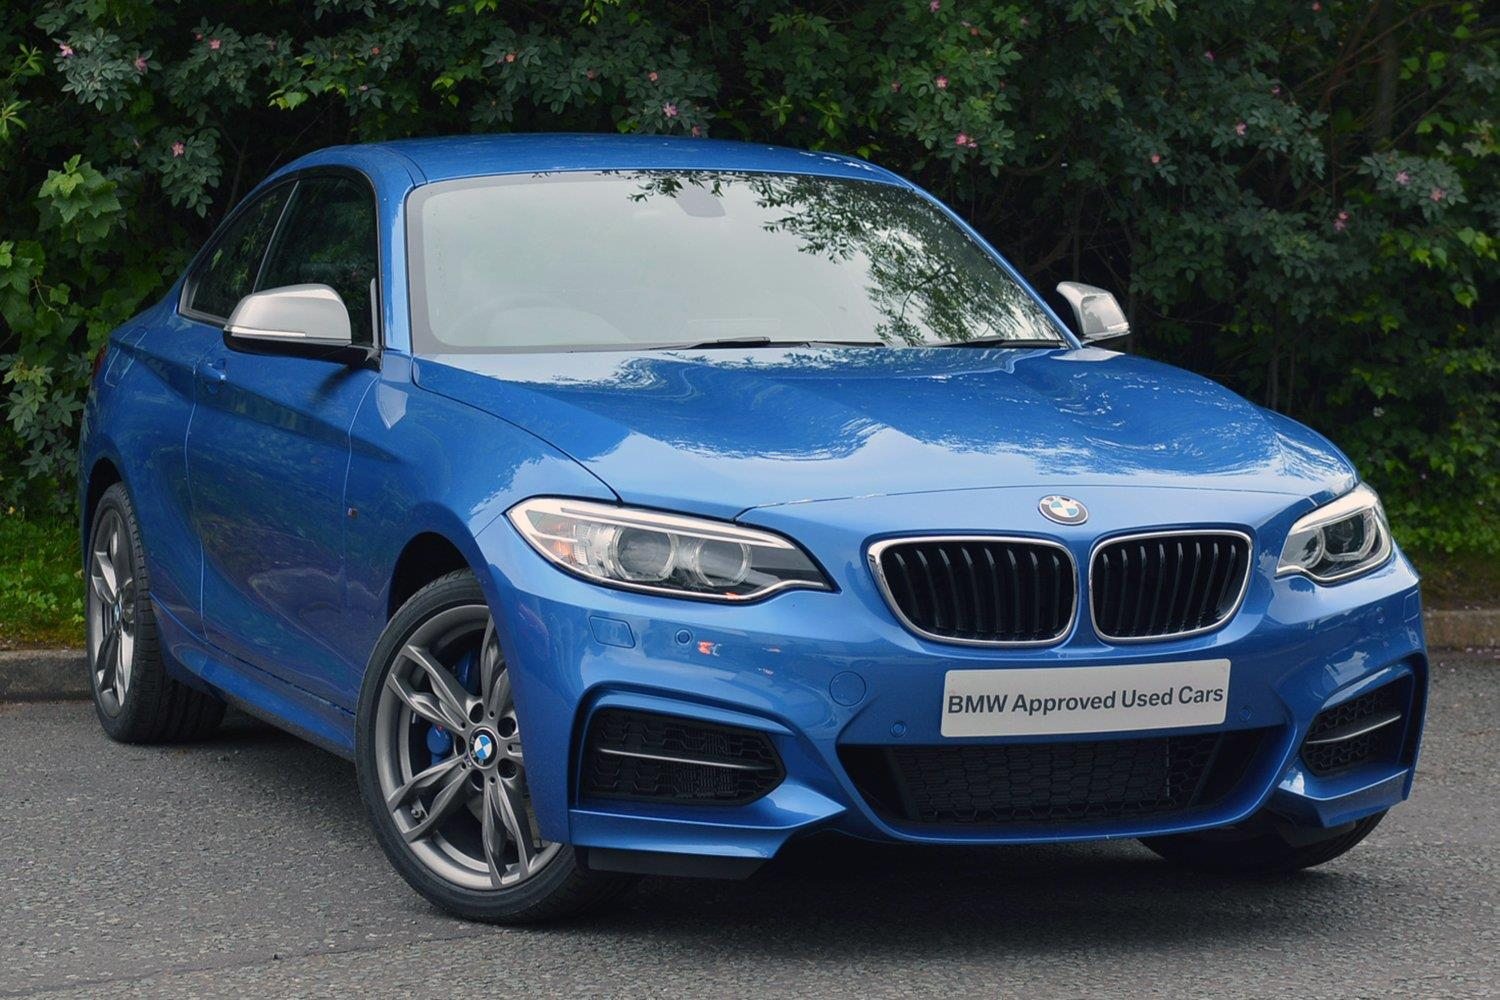 BMW 2 Series Coupé MW17YNV - Image 3